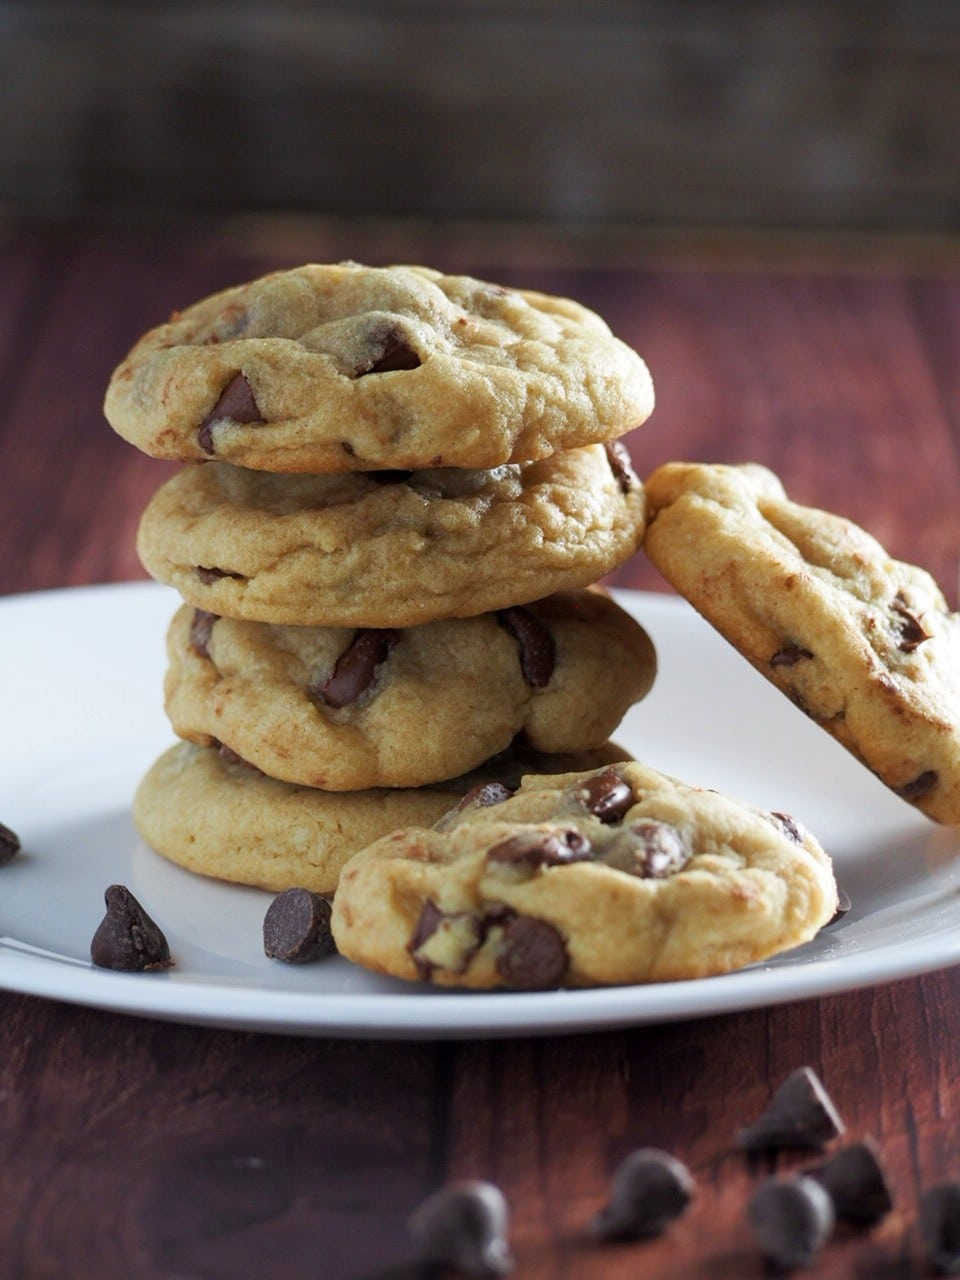 Nutella-filled chocolate chip cookies stacked on a plate.